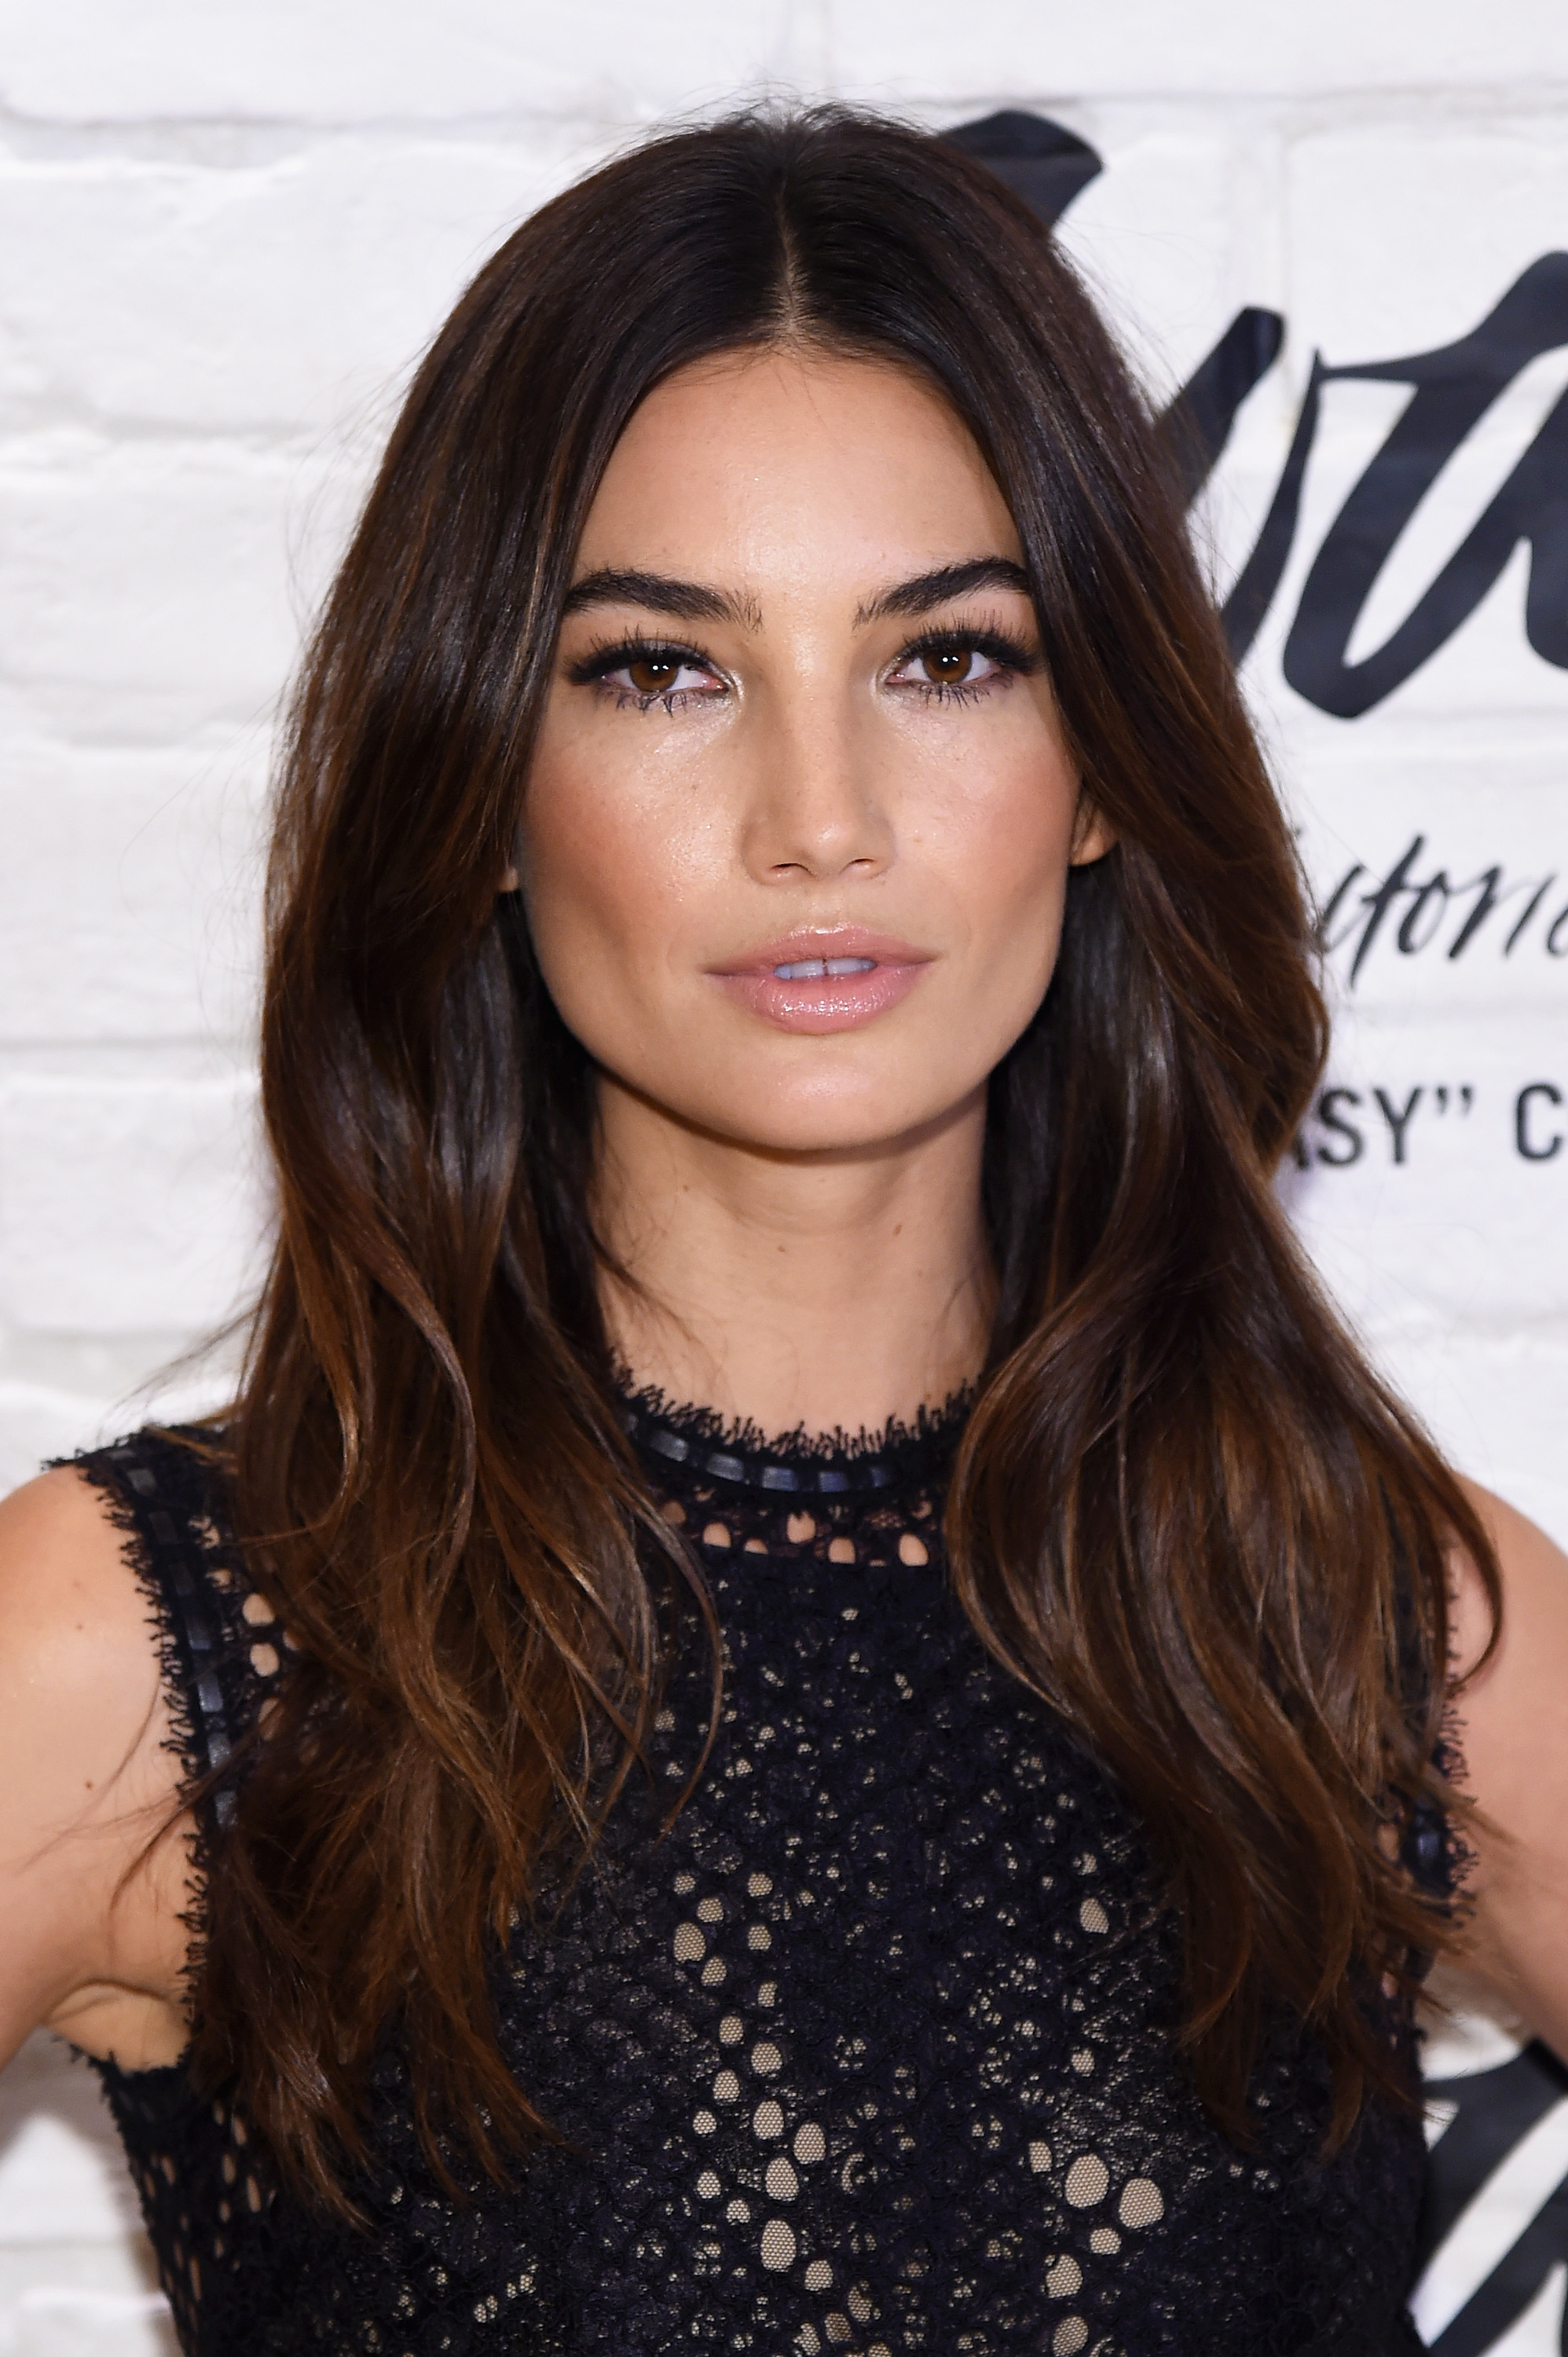 The 10 Best Hairstyles for Square Faces